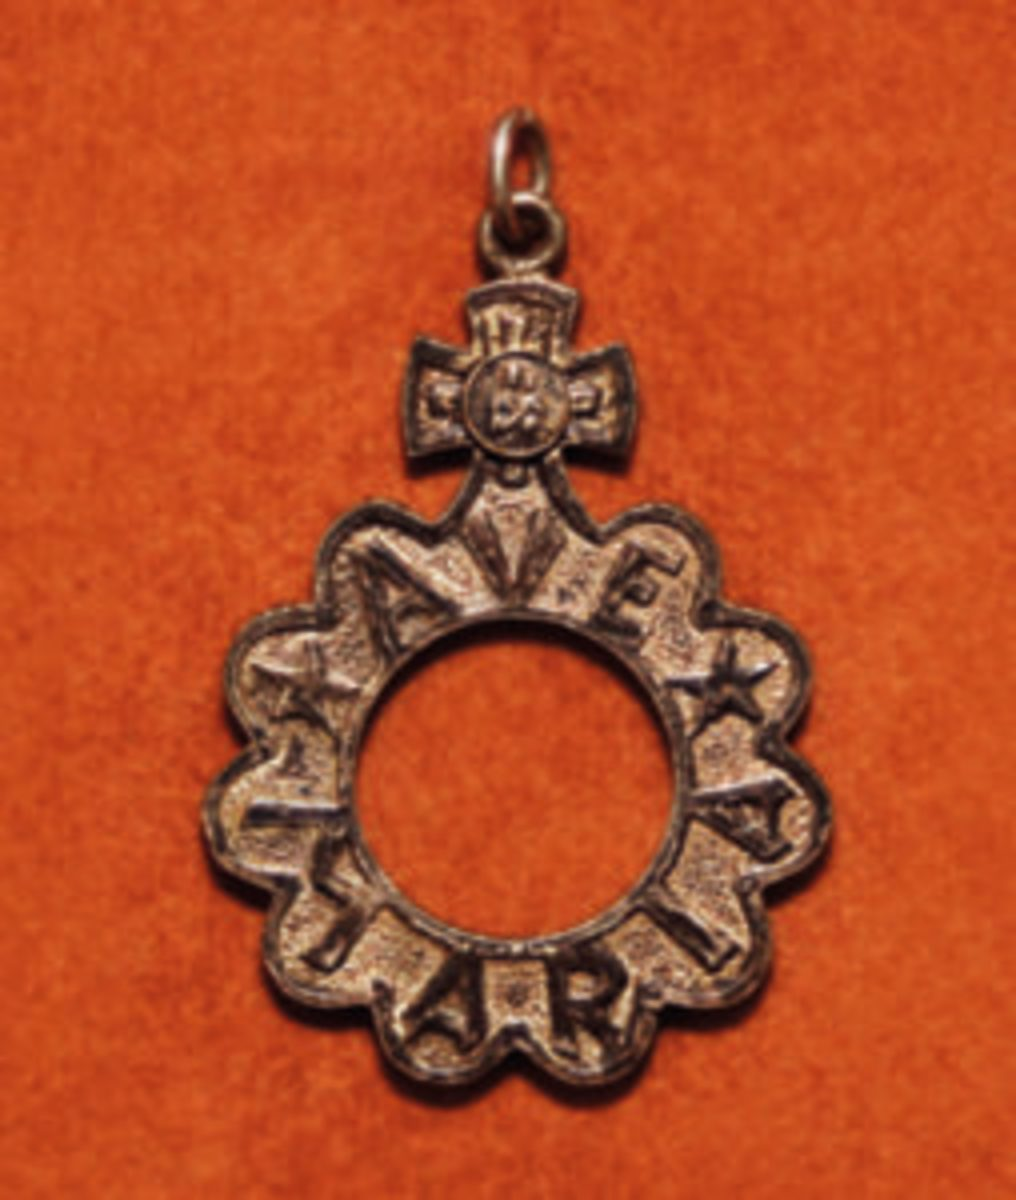 Finger rosary with Ave Maria inscription